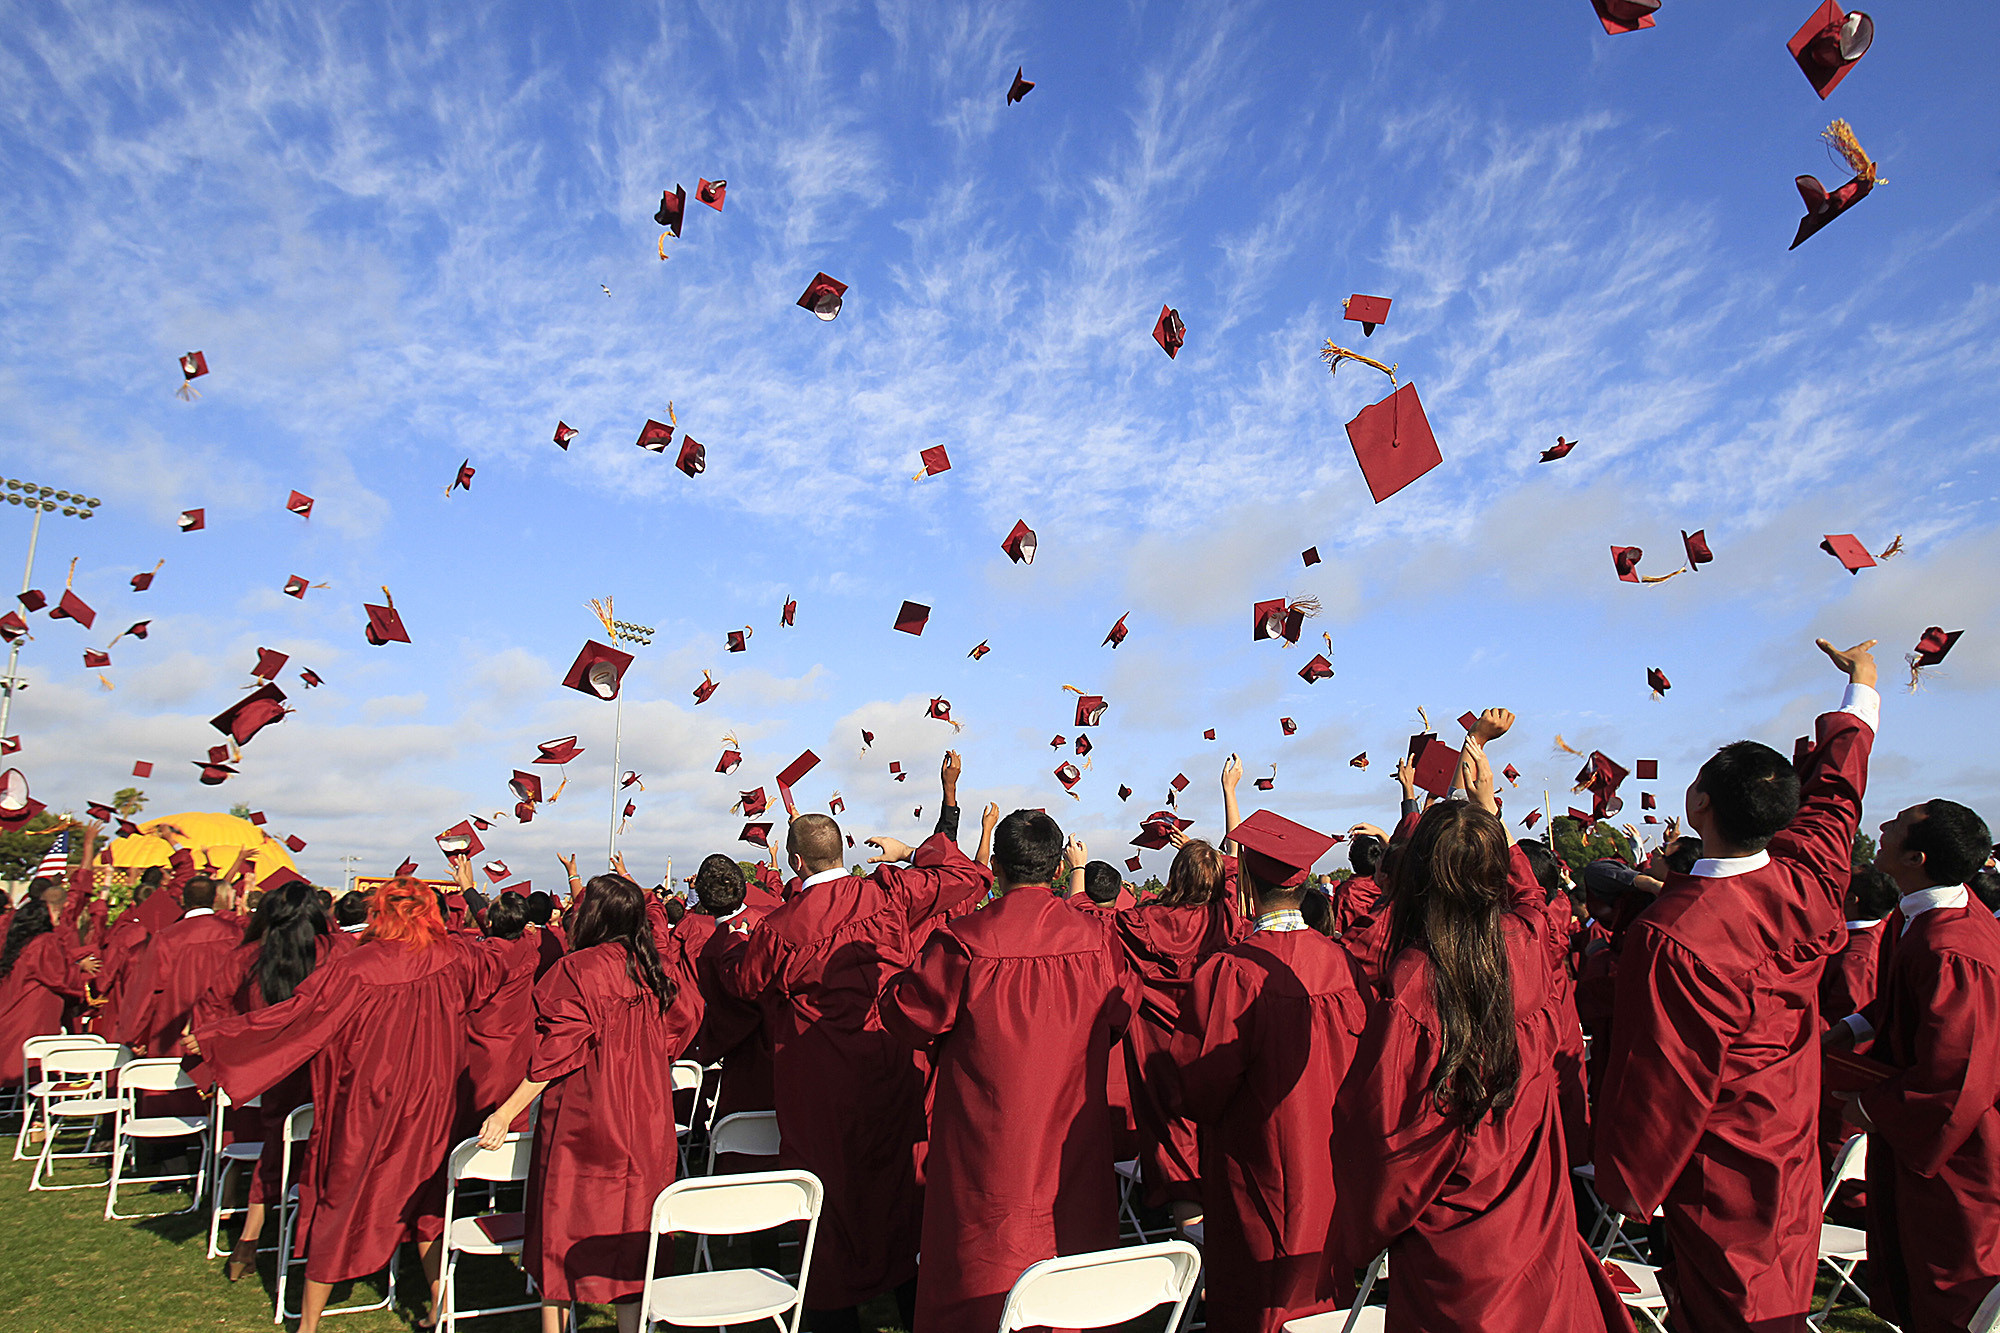 10 Things Every High School Graduate Should Do Before College